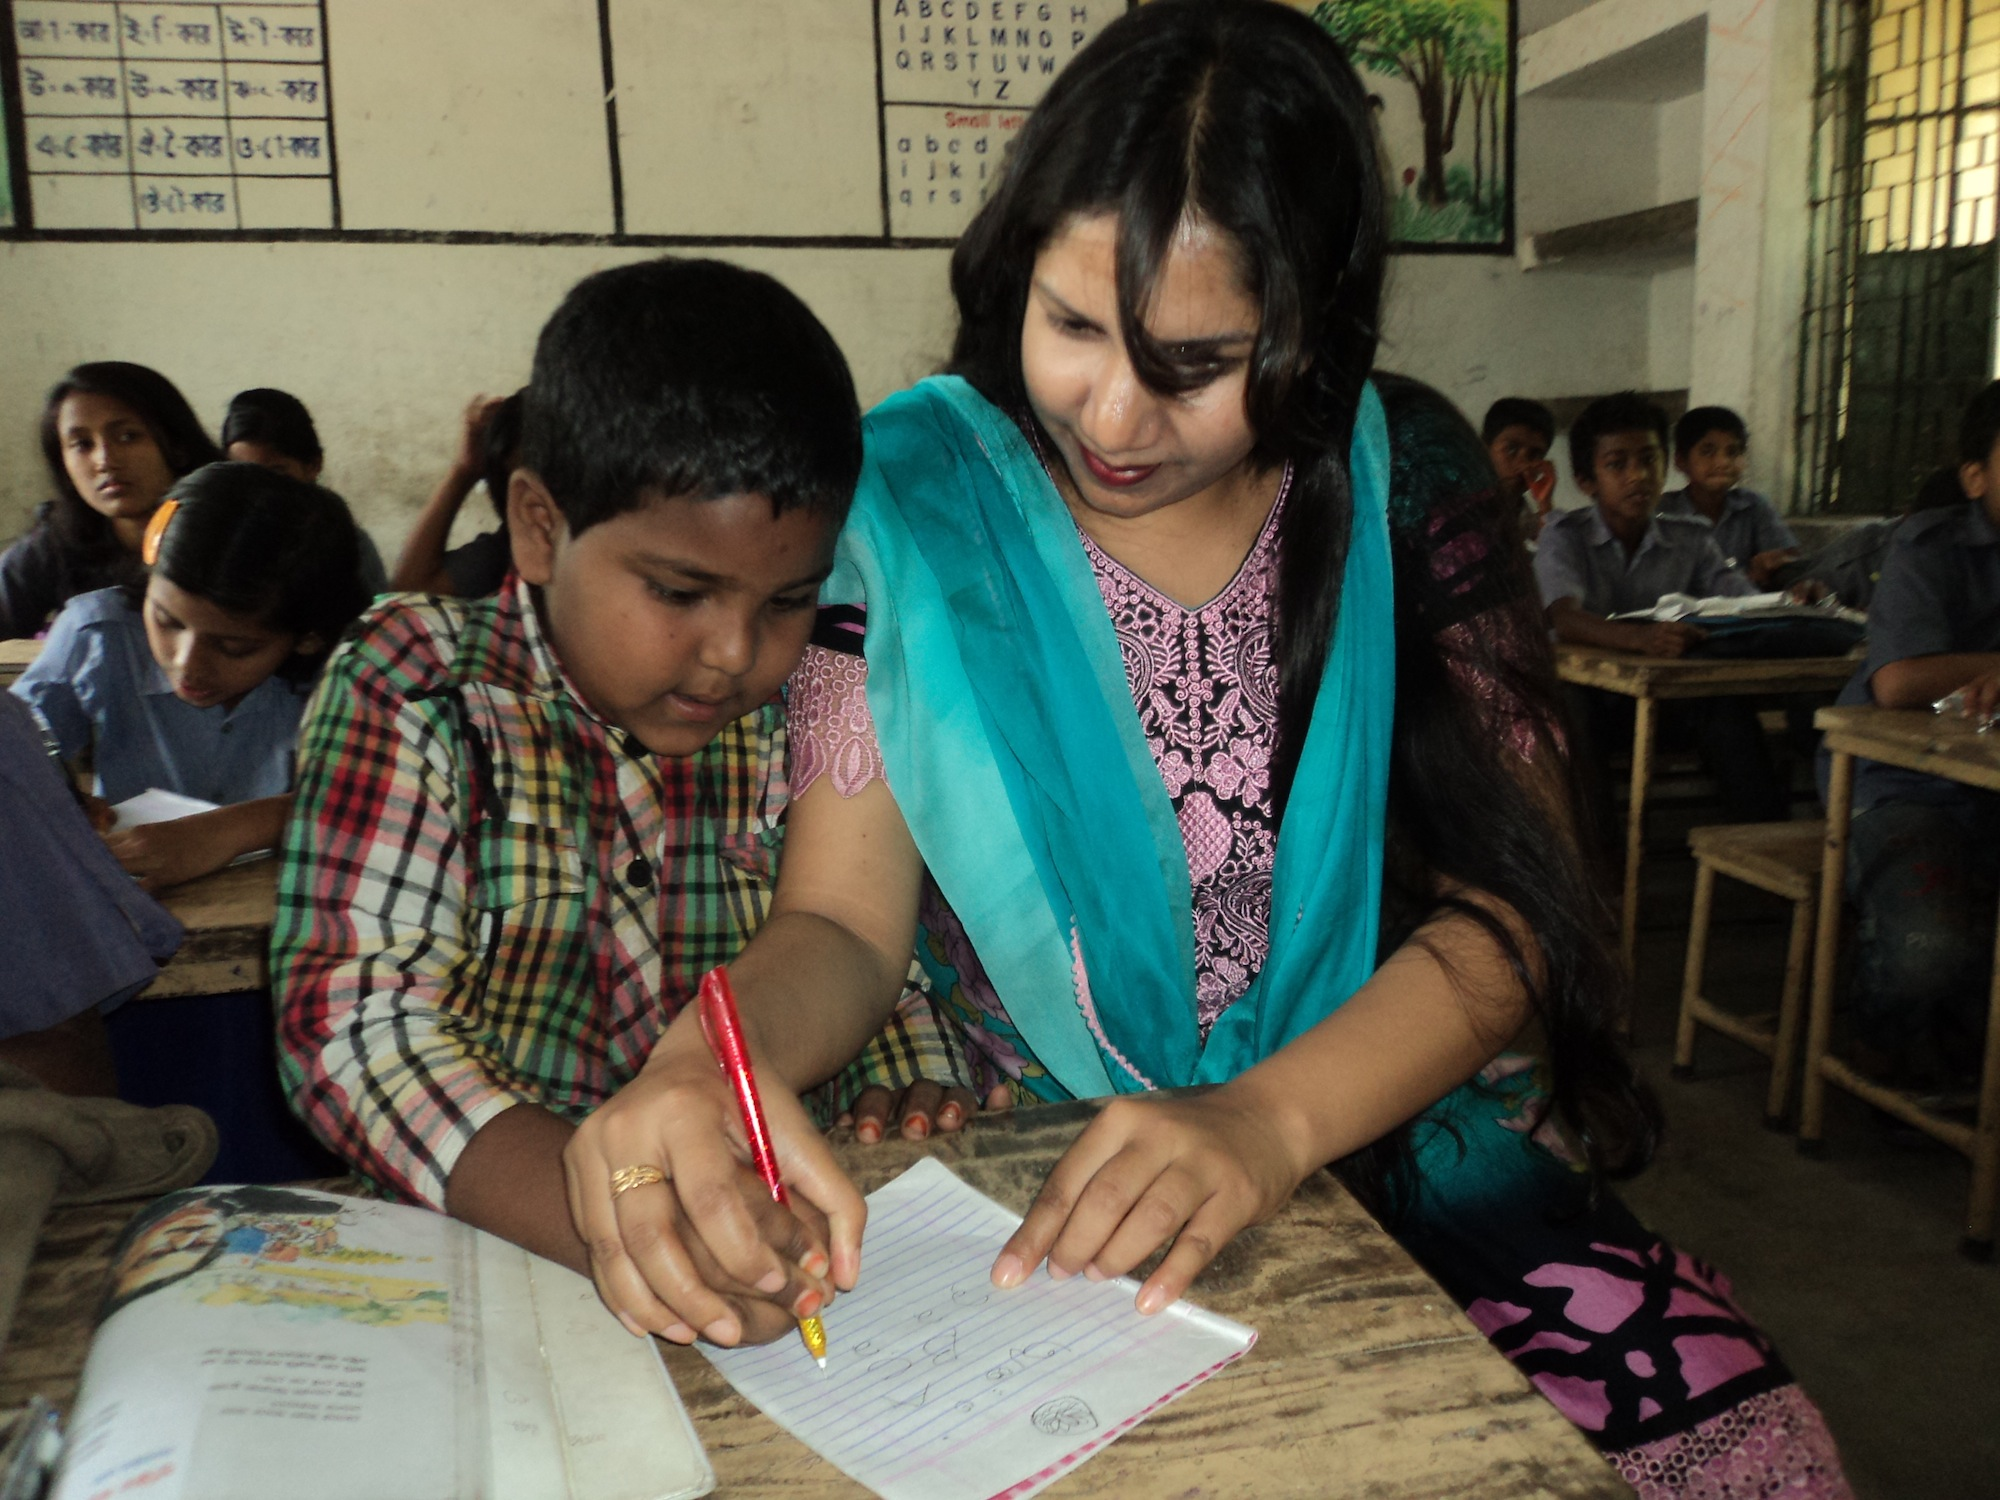 Training teachers is key to helping children with disabilities says British charity